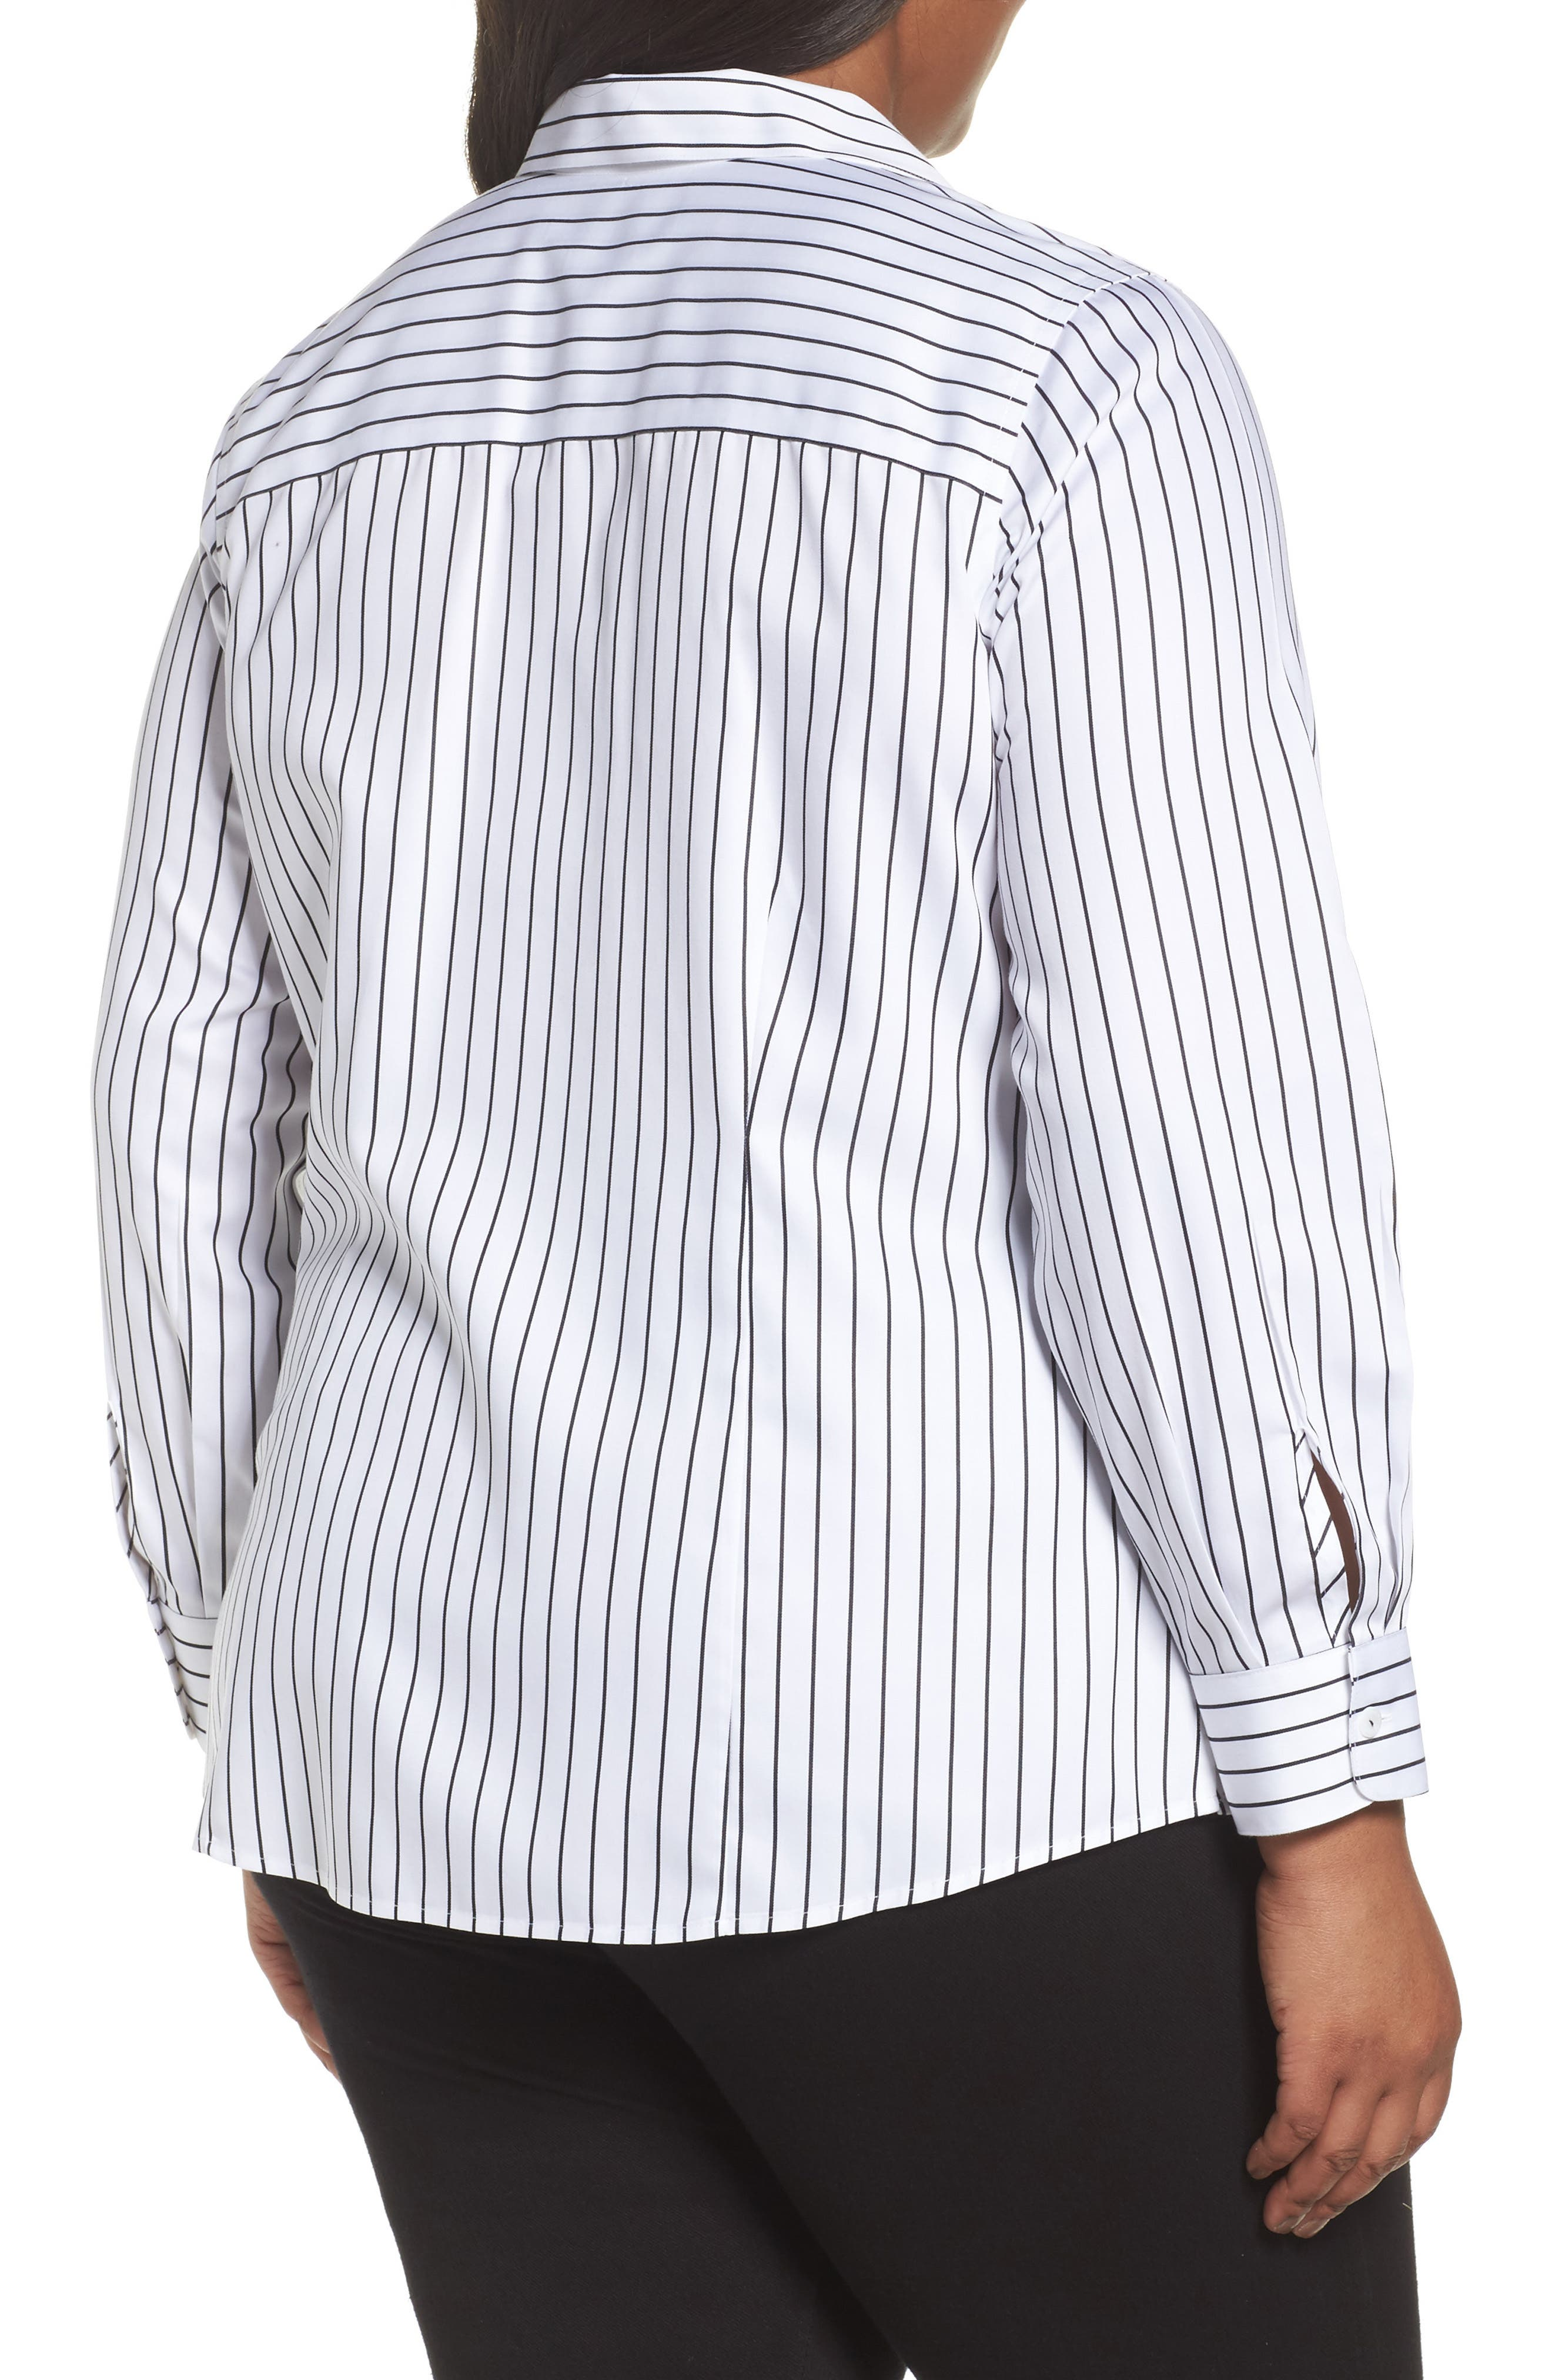 Annie Holiday Stripe Shirt,                             Alternate thumbnail 2, color,                             100